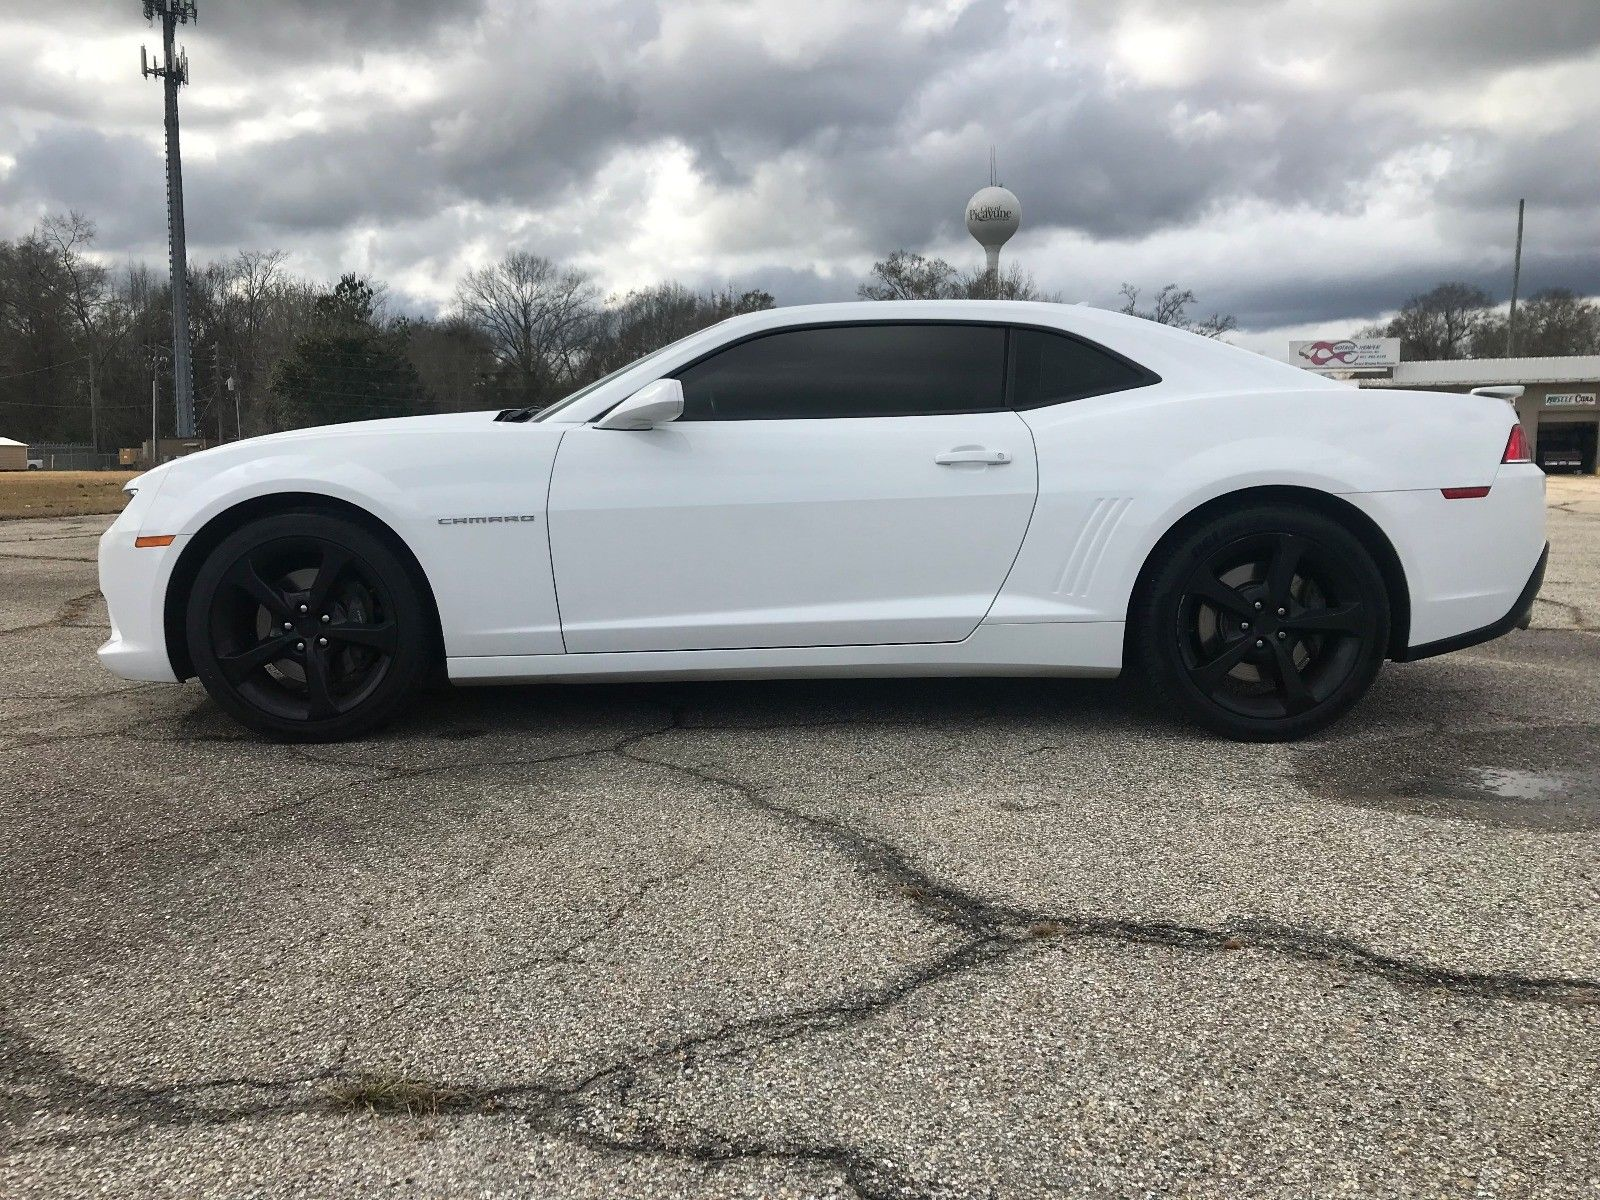 Great 2014 Chevrolet Camaro 2ss/rs 2014 Camaro 2ss/rs CAMMED low miles  2018-2019